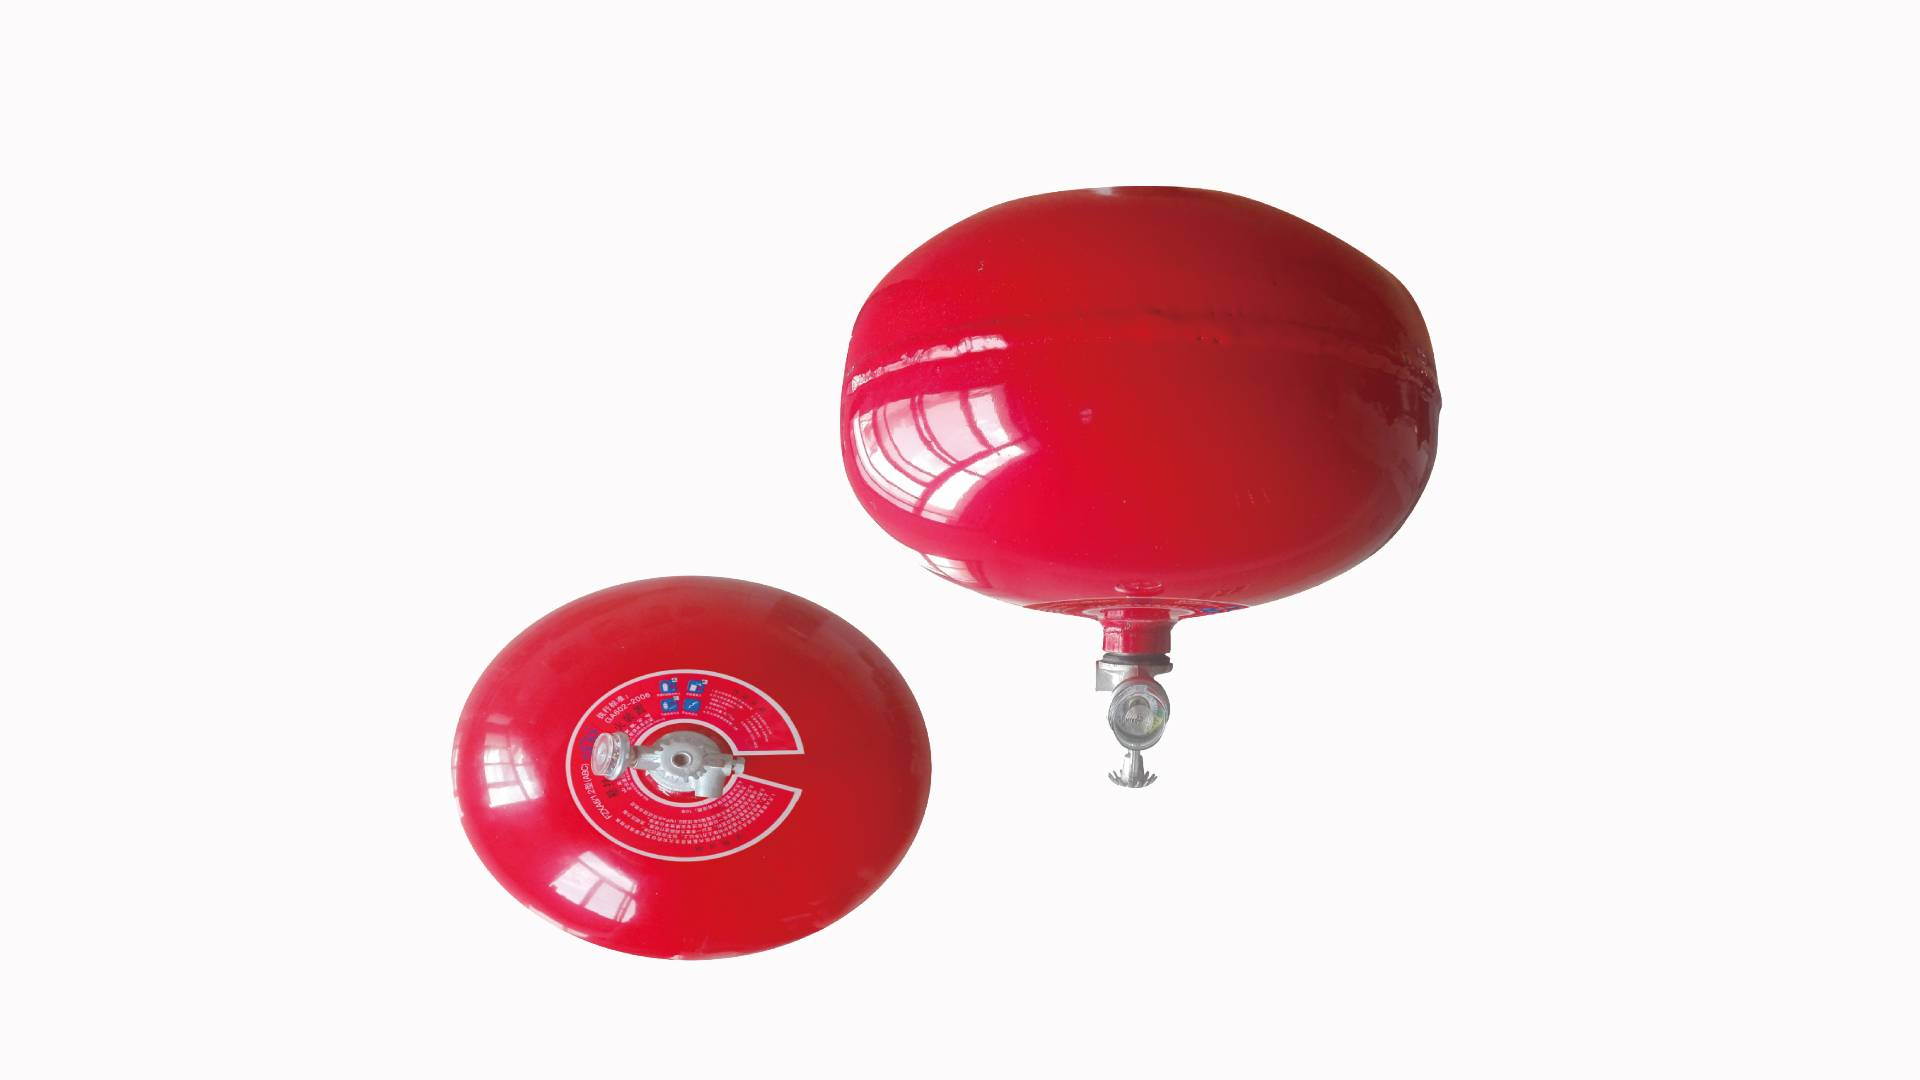 2kg elide fire extinguisher ball